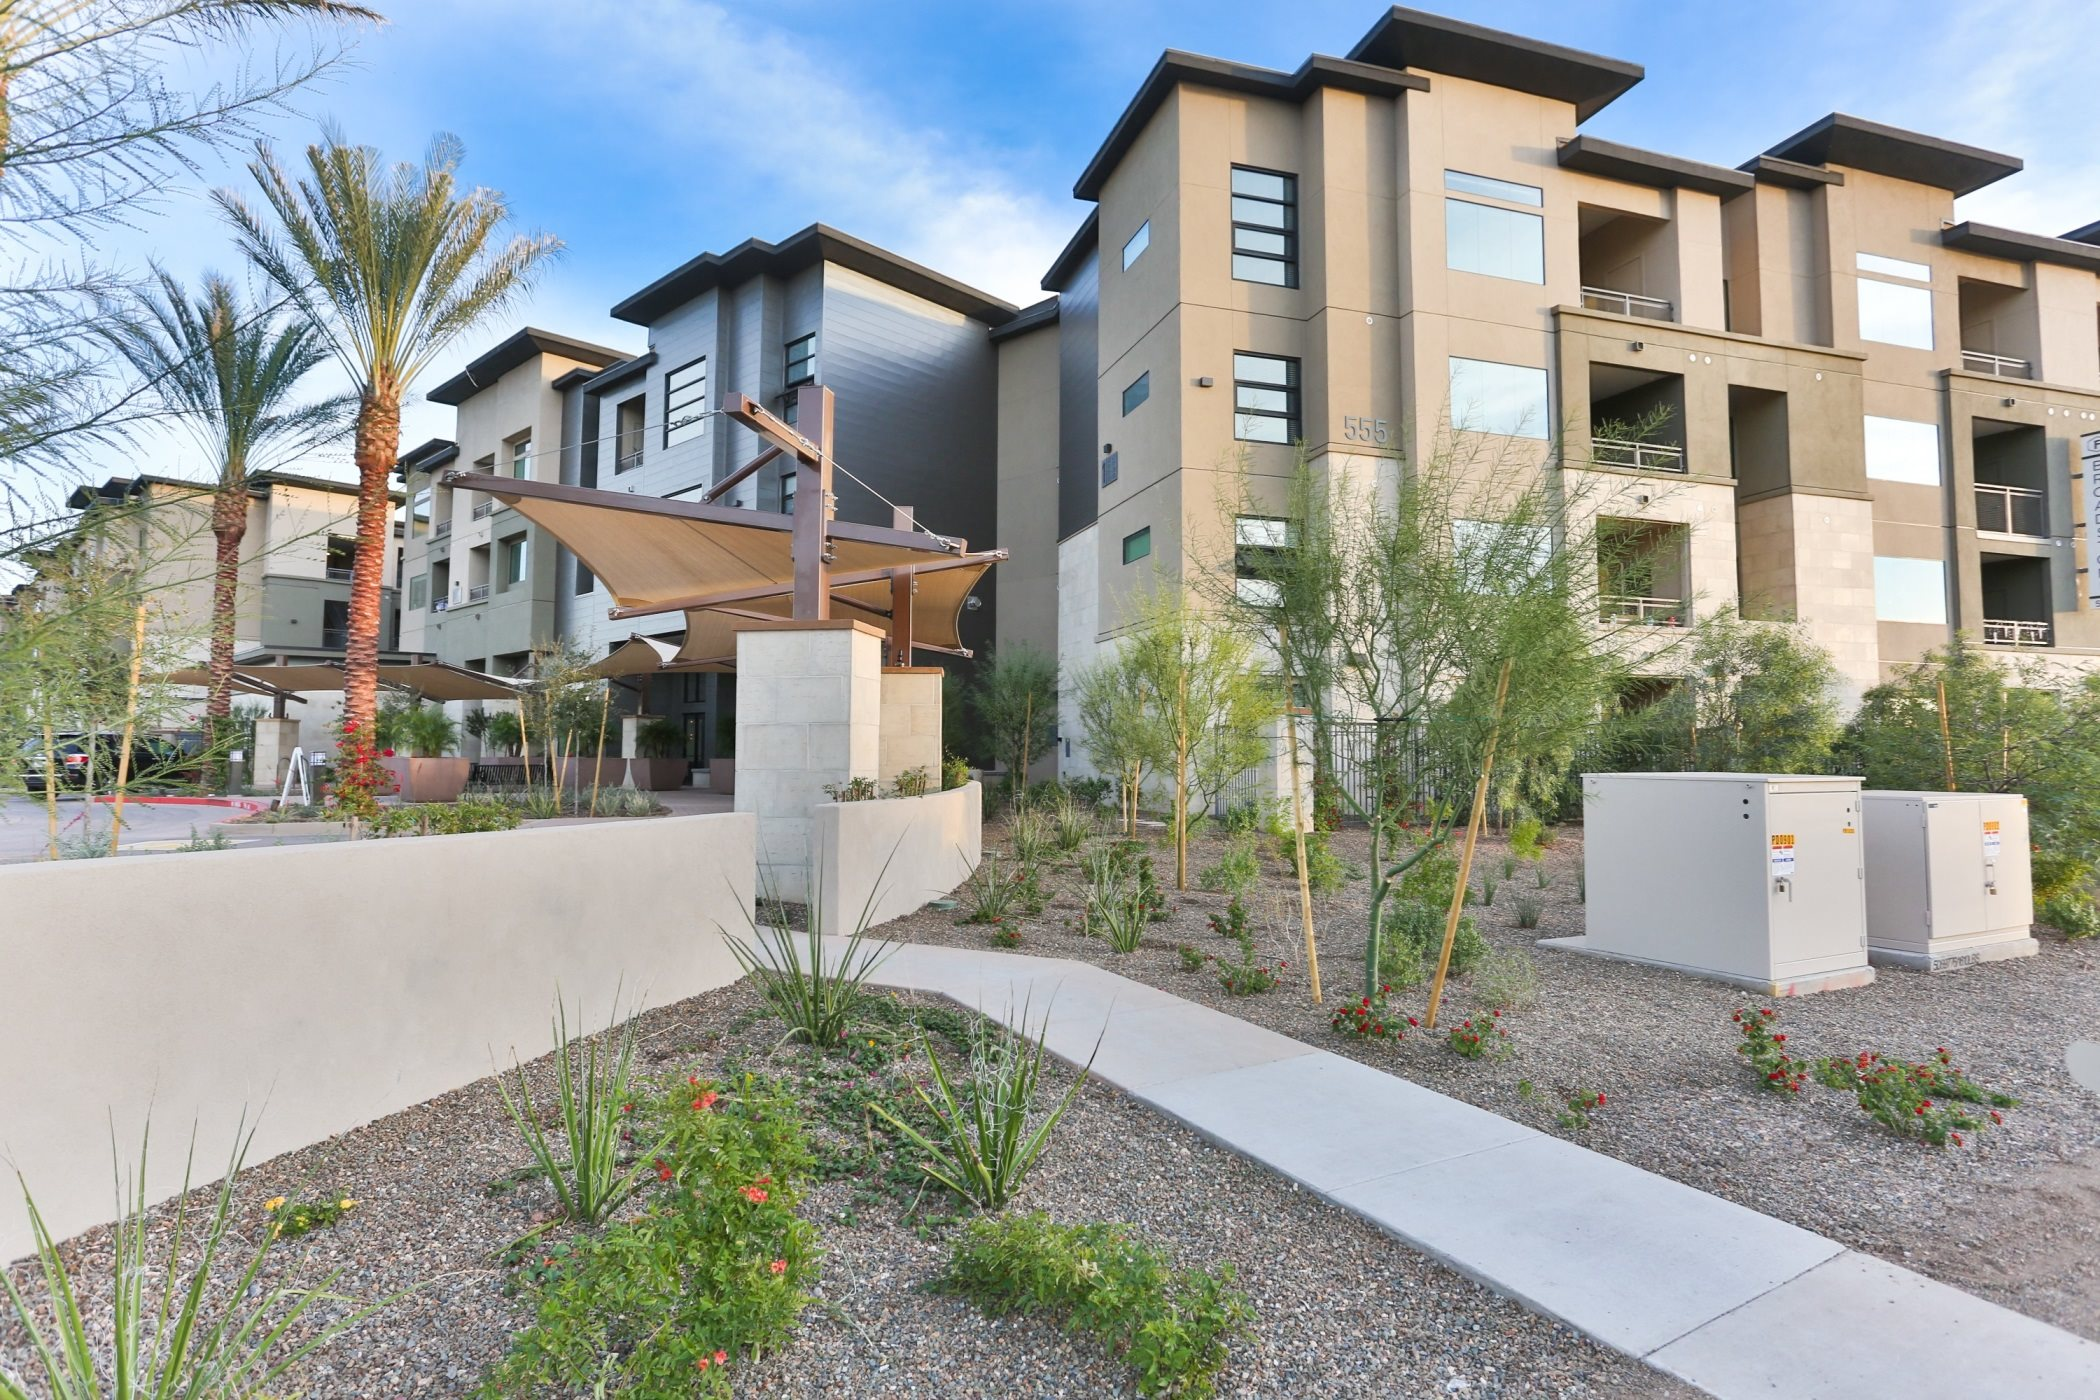 External Apartment View at Fashion Center, Chandler, AZ 85226